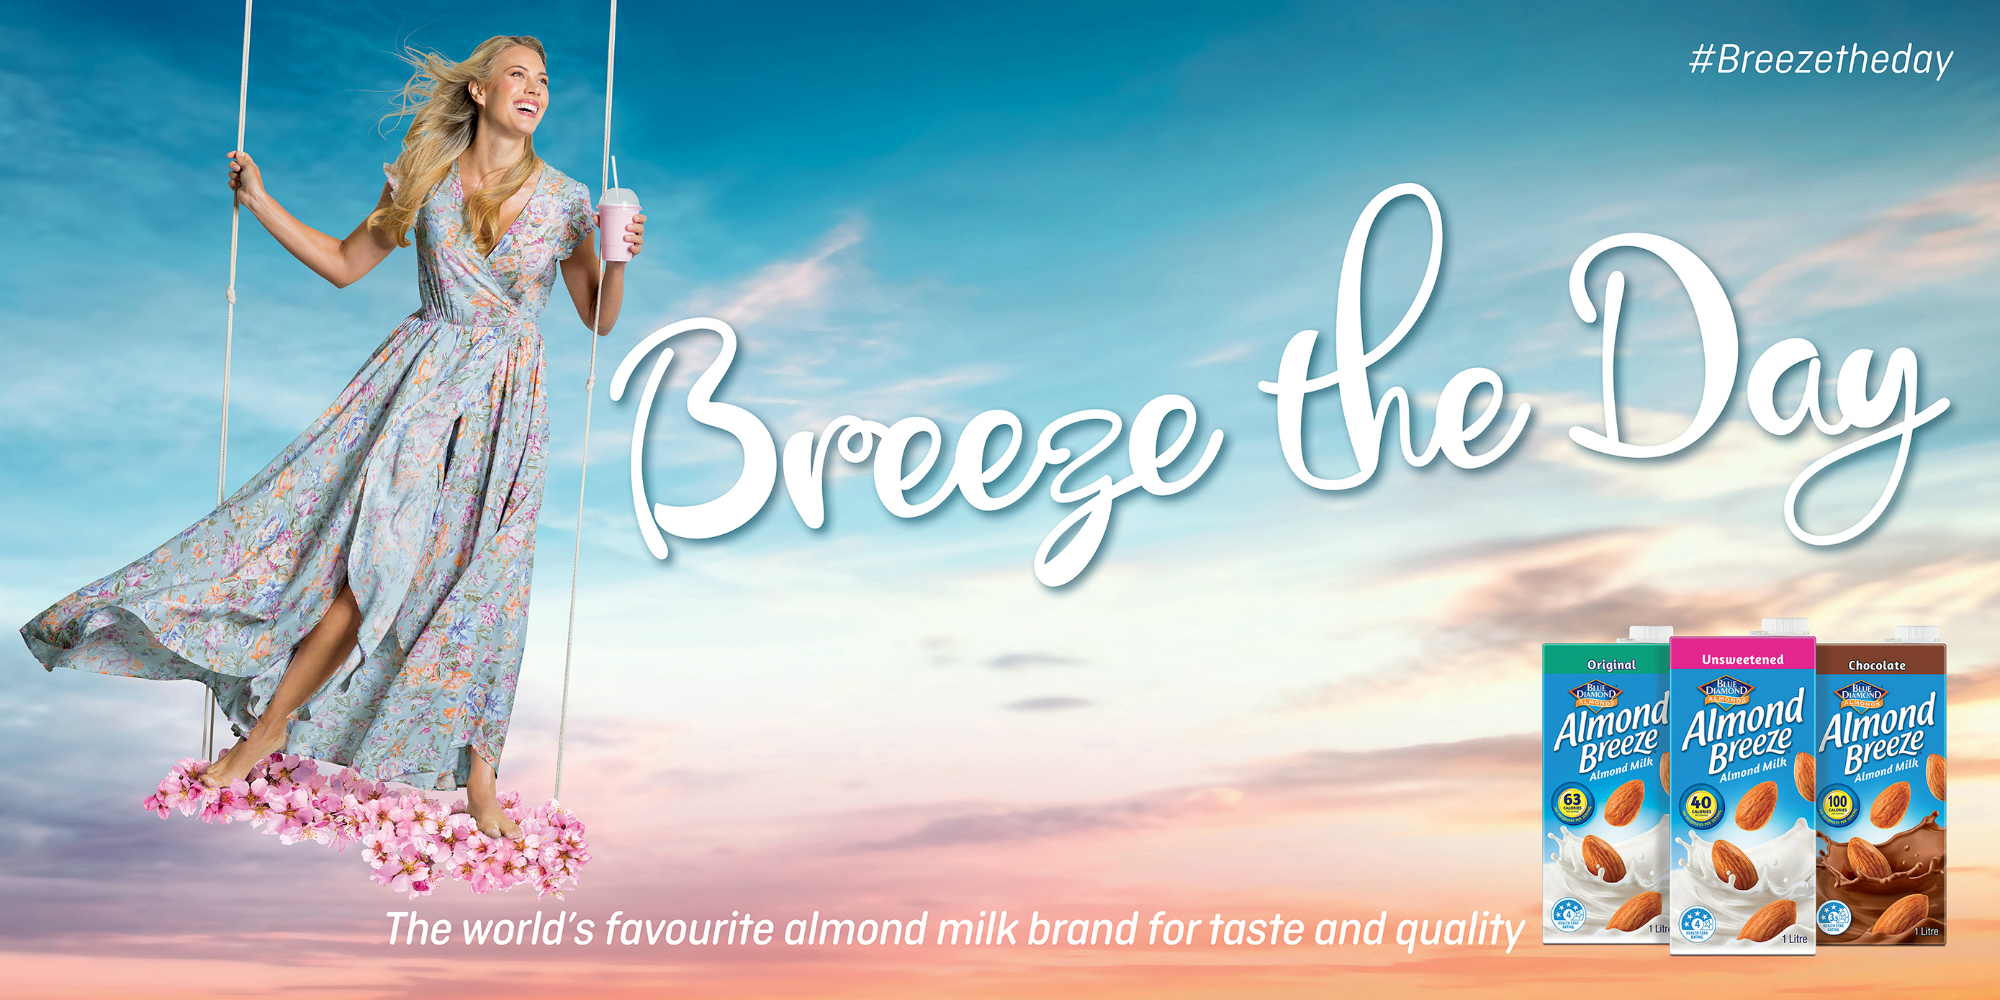 Almond Breeze campaign